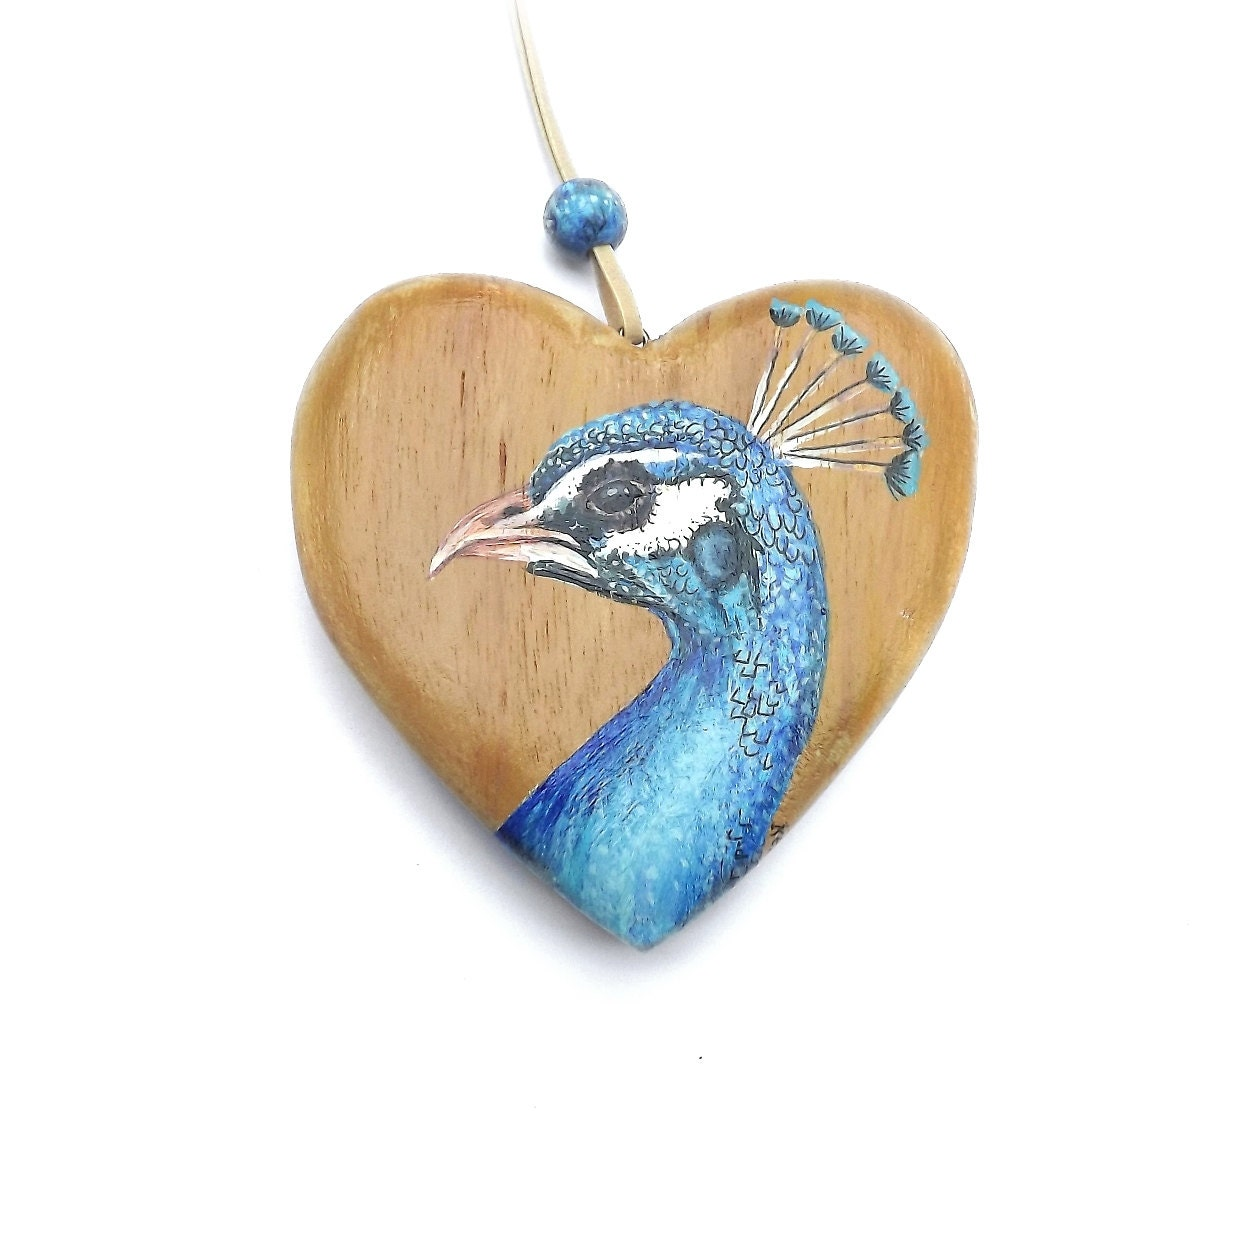 Peacock heart a wooden ornament painted with